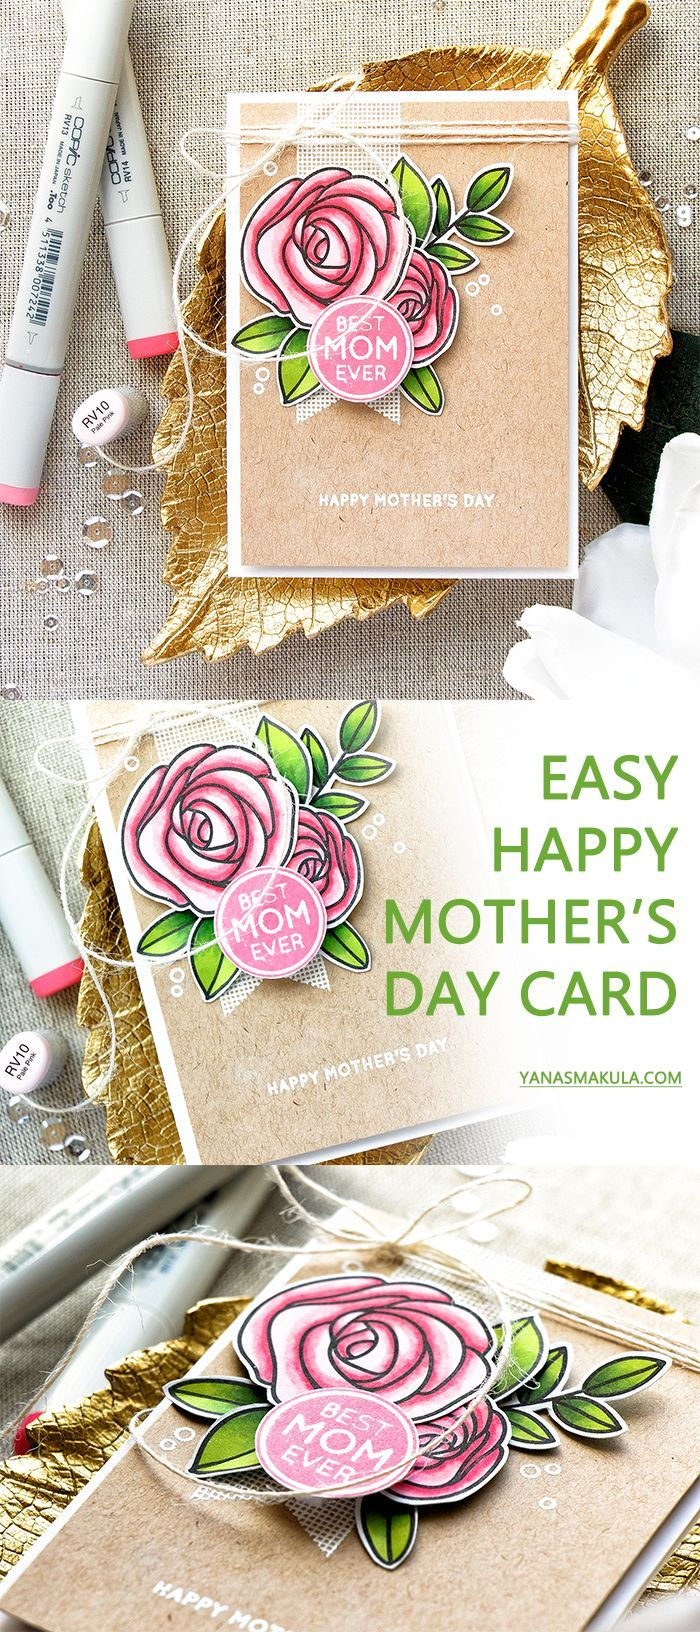 simon says stamp  elegant happy mother's day card with